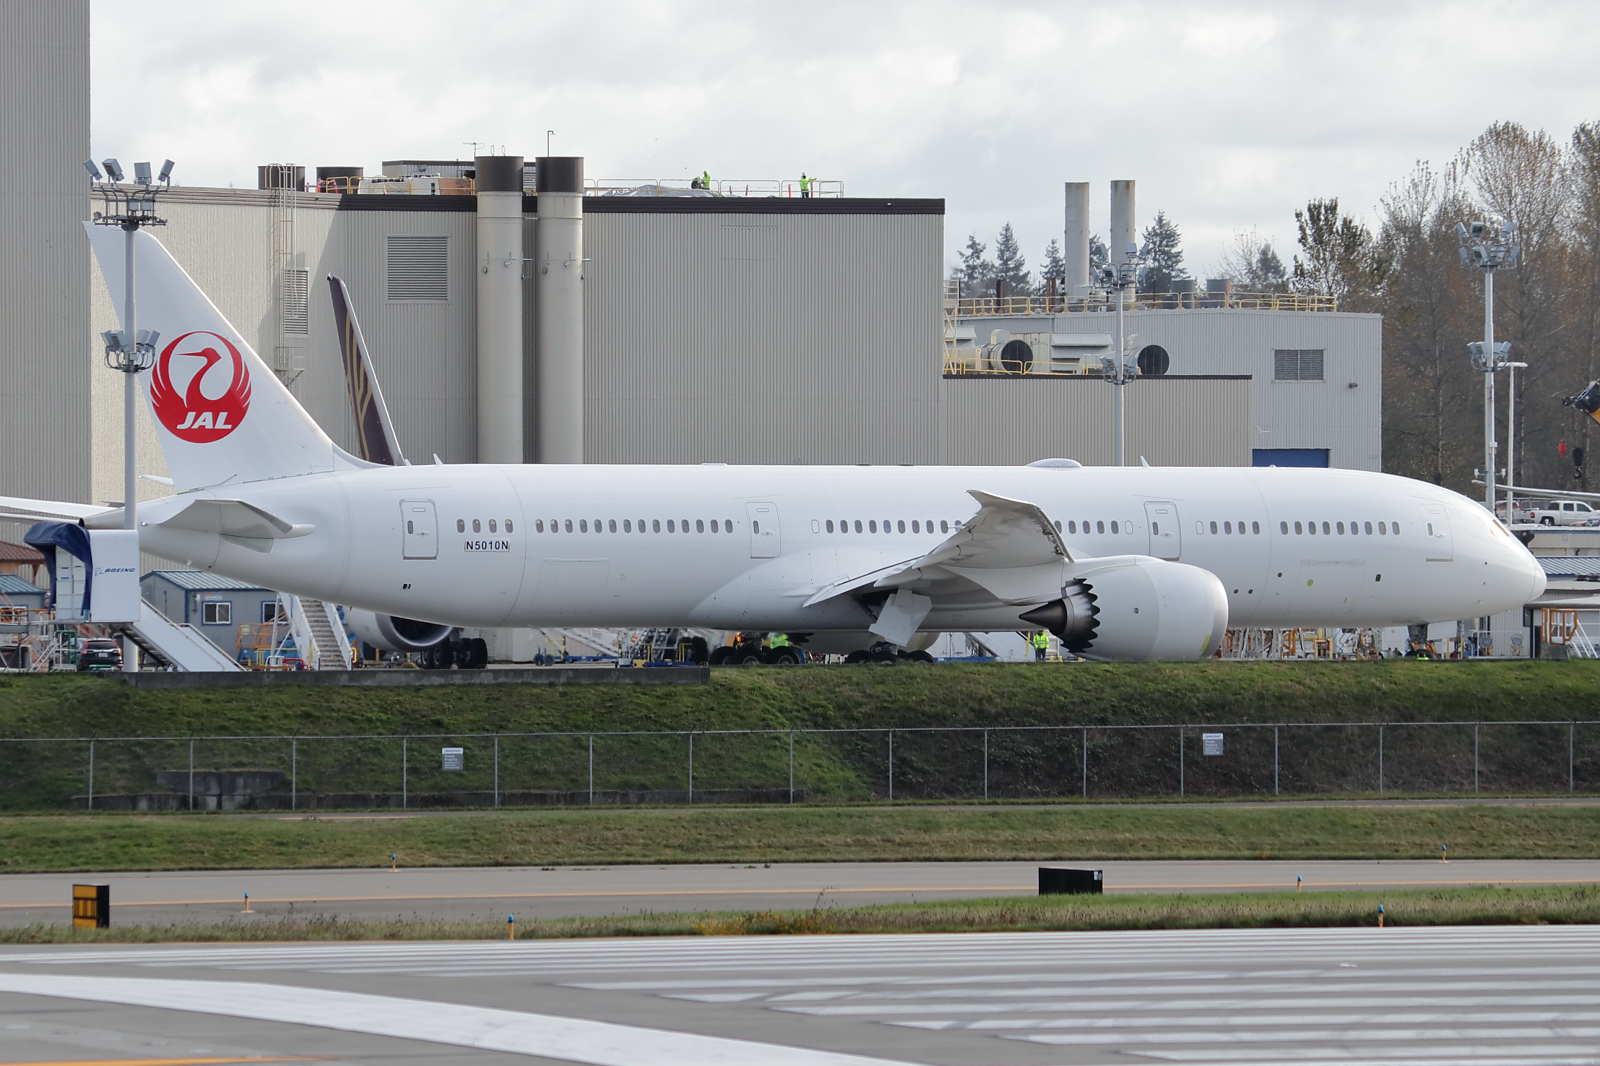 Japan Airlines 777-9 at KPAE Paine Field